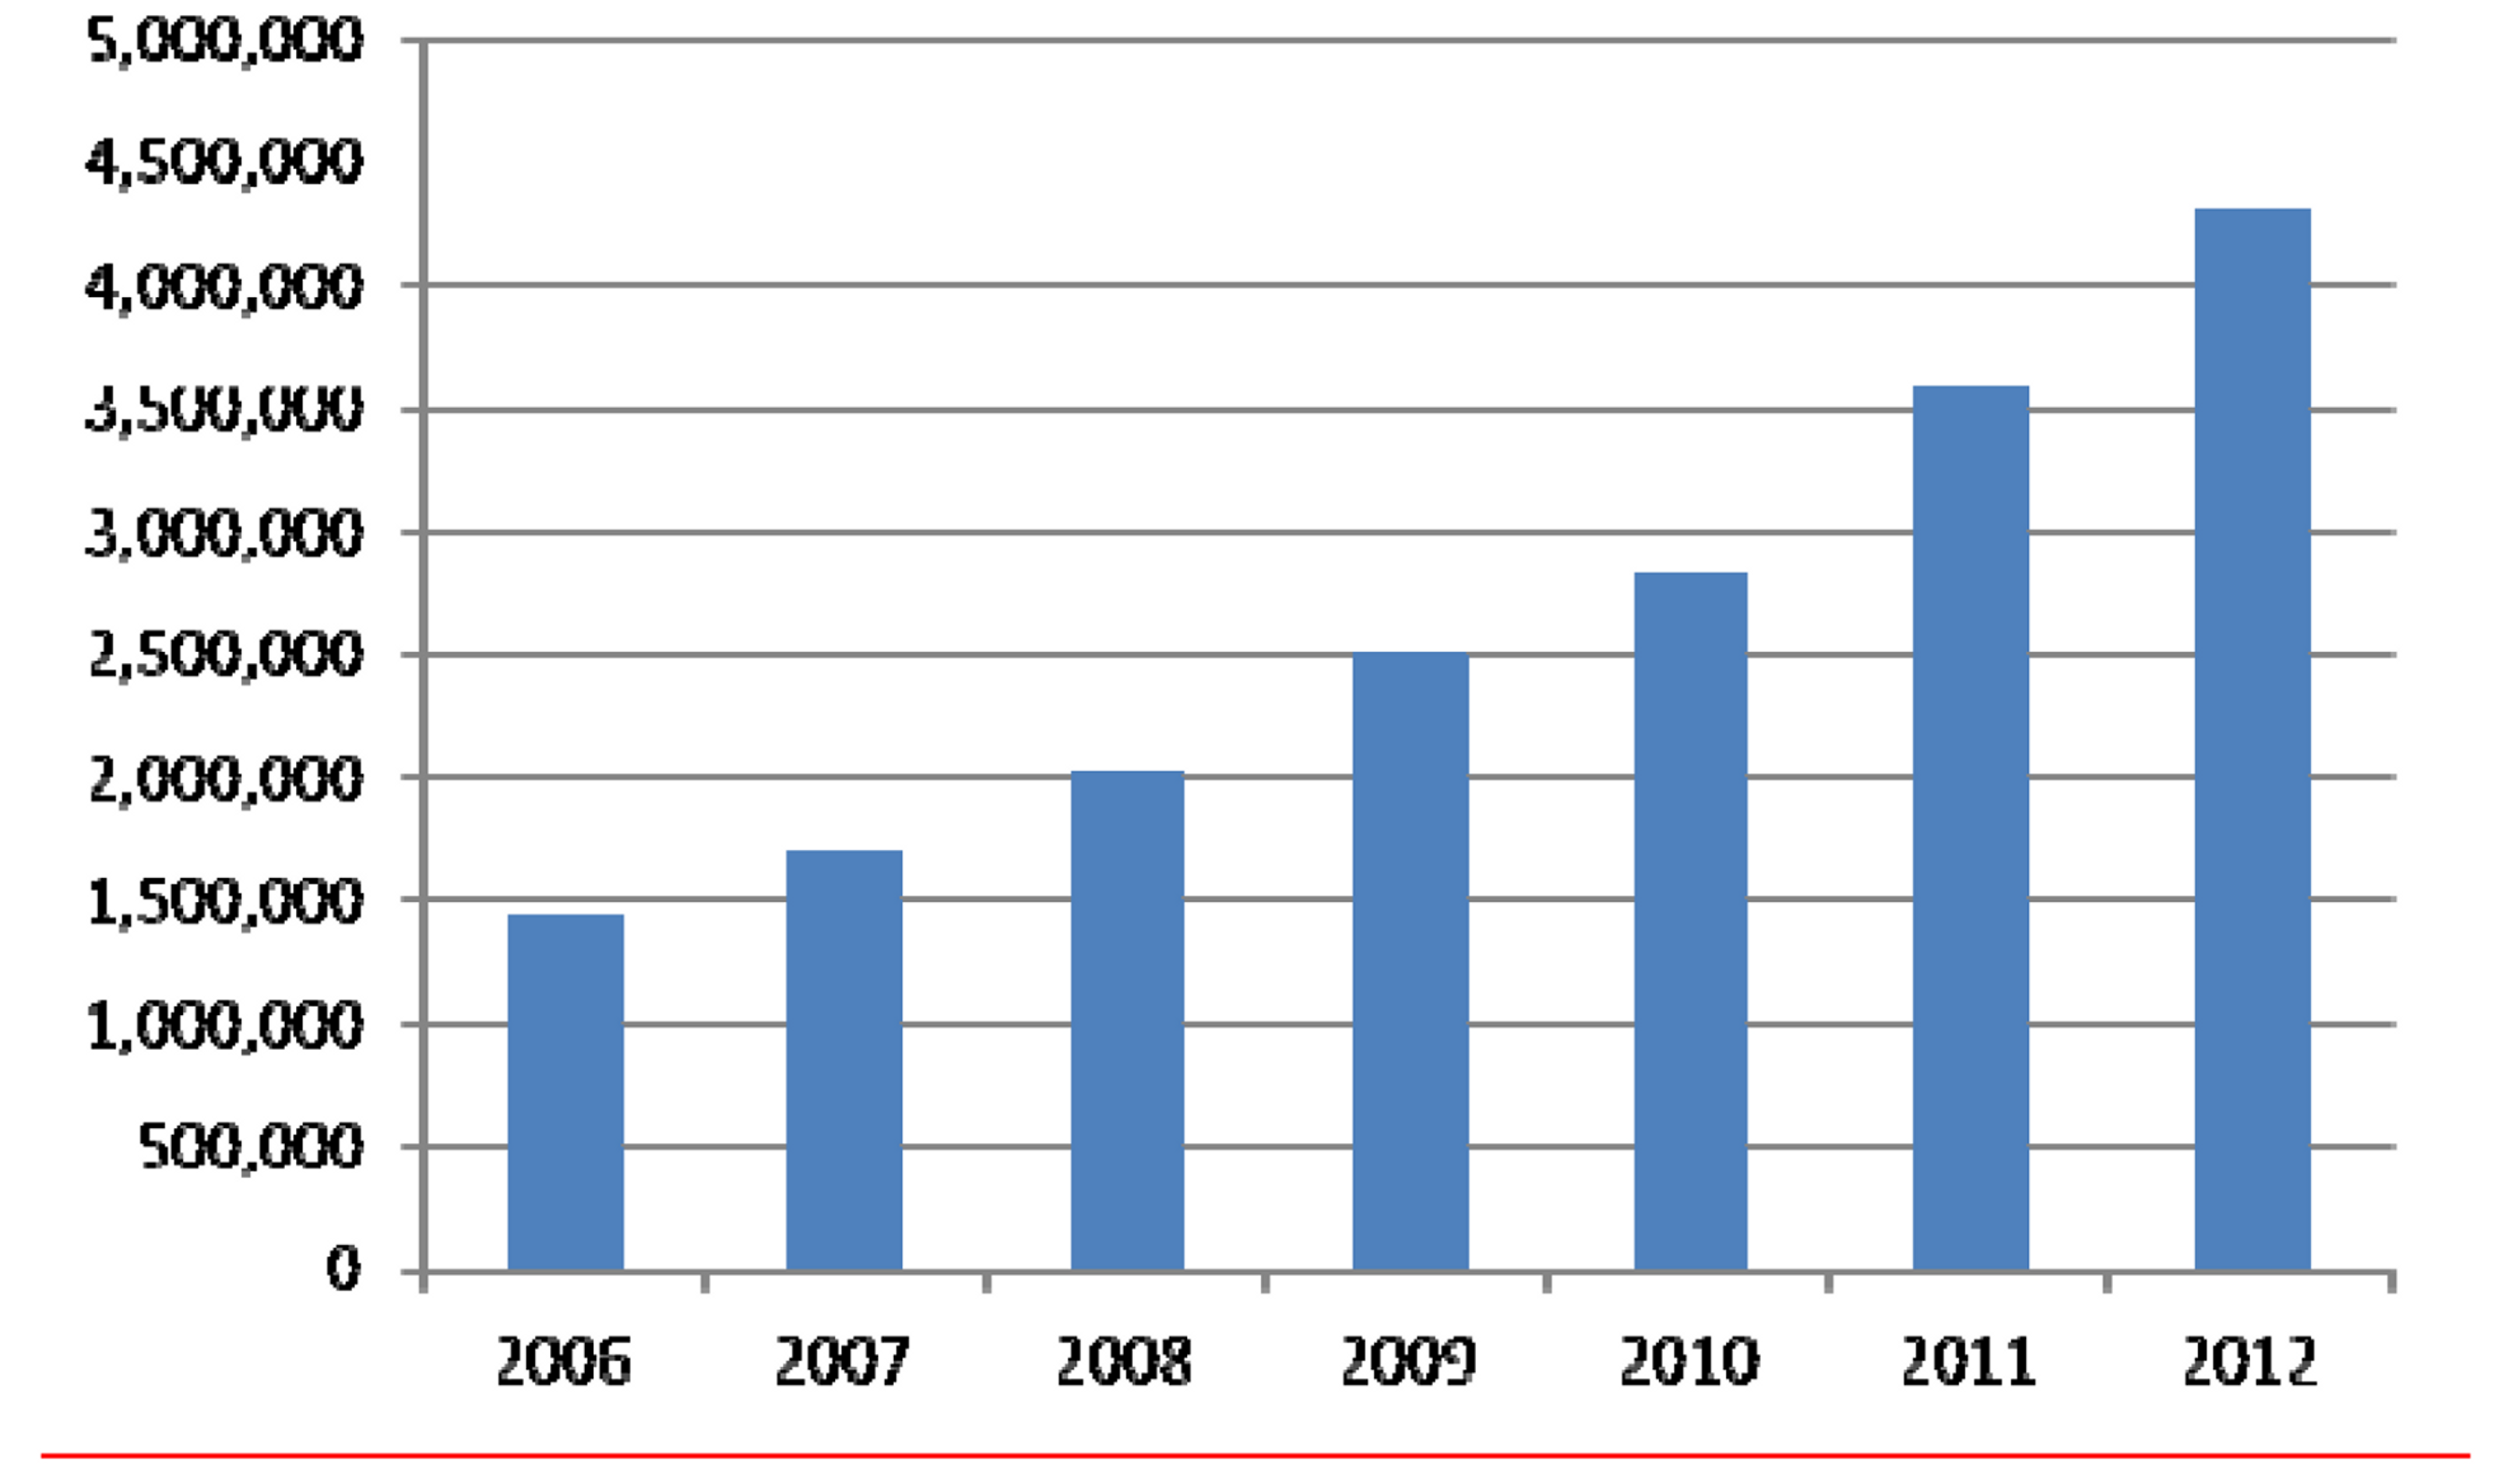 Full-text downloads of Cochrane Reviews, 2006 to 2012.